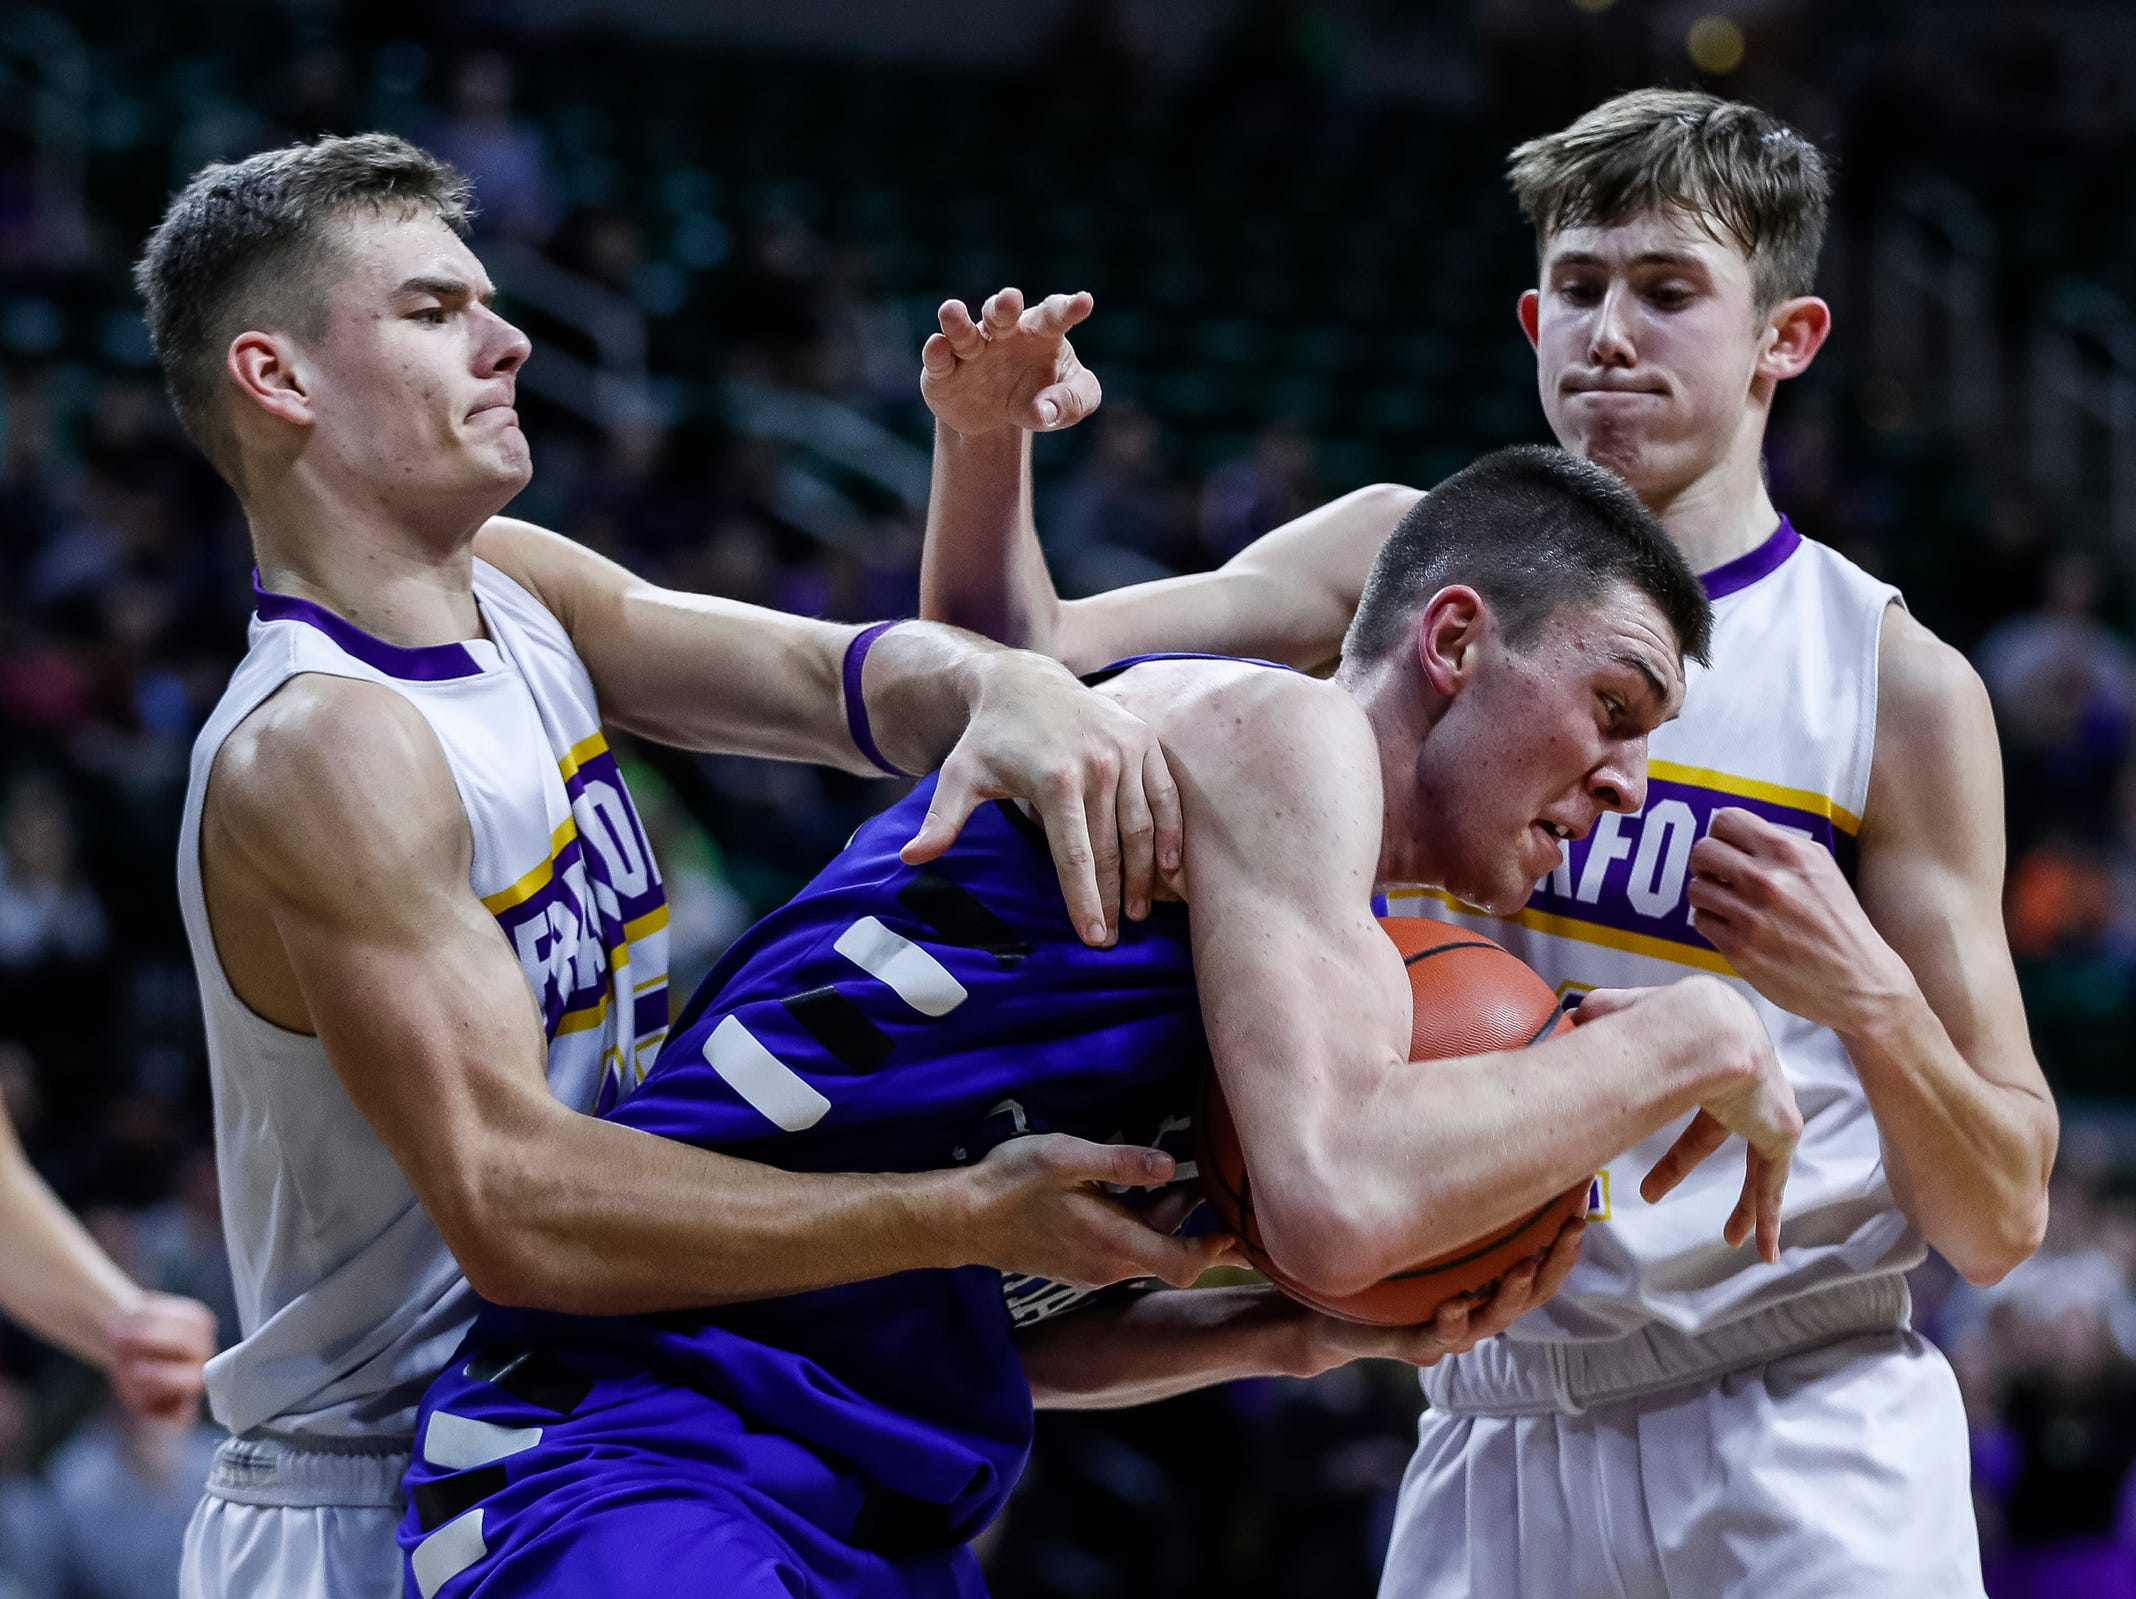 Wyoming Tri-unity Christian's Elijah Badgero (34) tries to protect the ball from Frankfort's Conner Smith (15) and Will Newbold (14) during the second half of MHSAA Division 4 semifinal at the Breslin Center in East Lansing, Thursday, March 14, 2019.